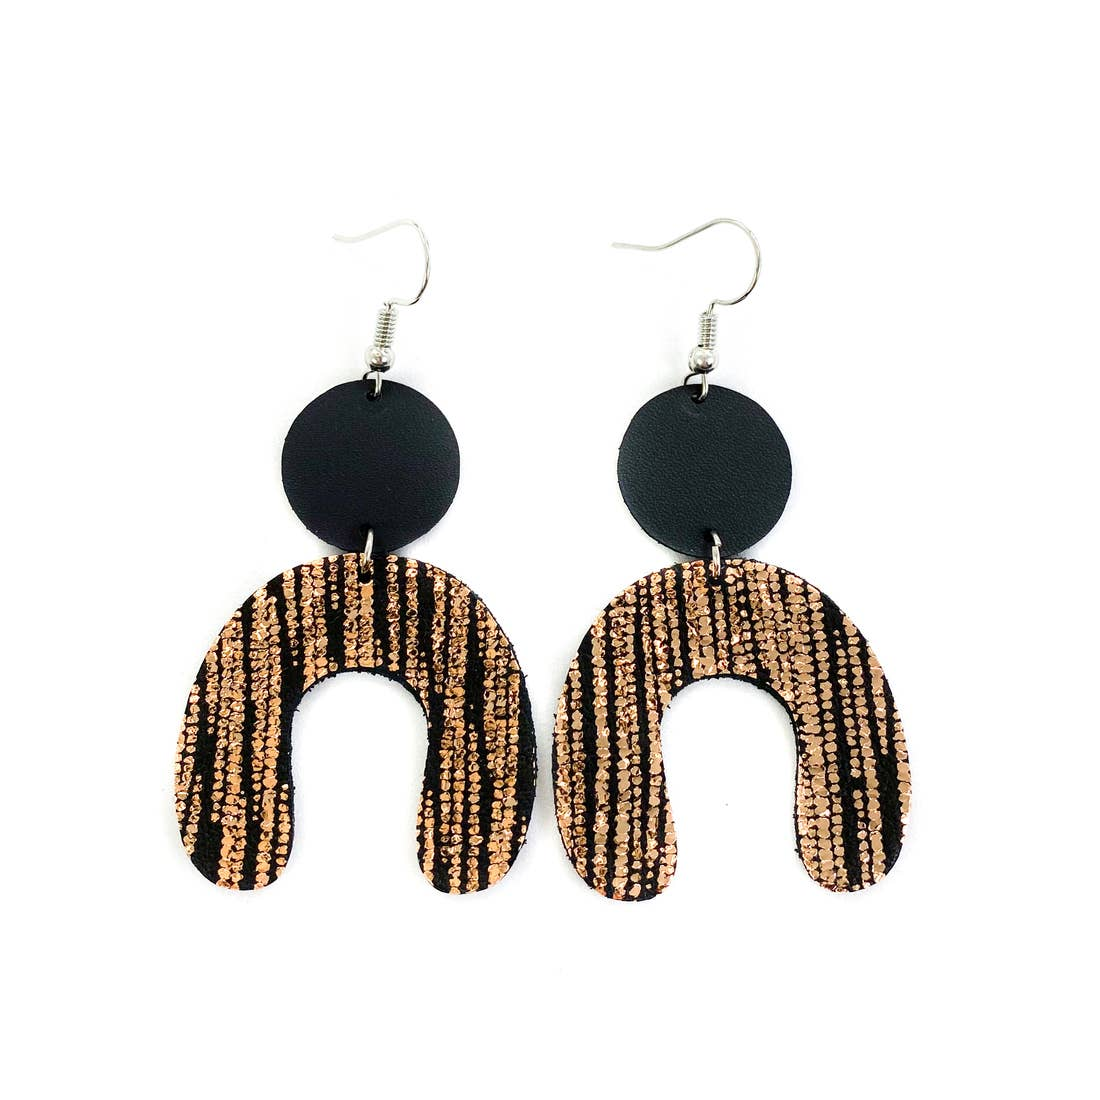 Savvy Bling Arch Leather Earrings Accessories - Jewelry - Earrings - Sophie